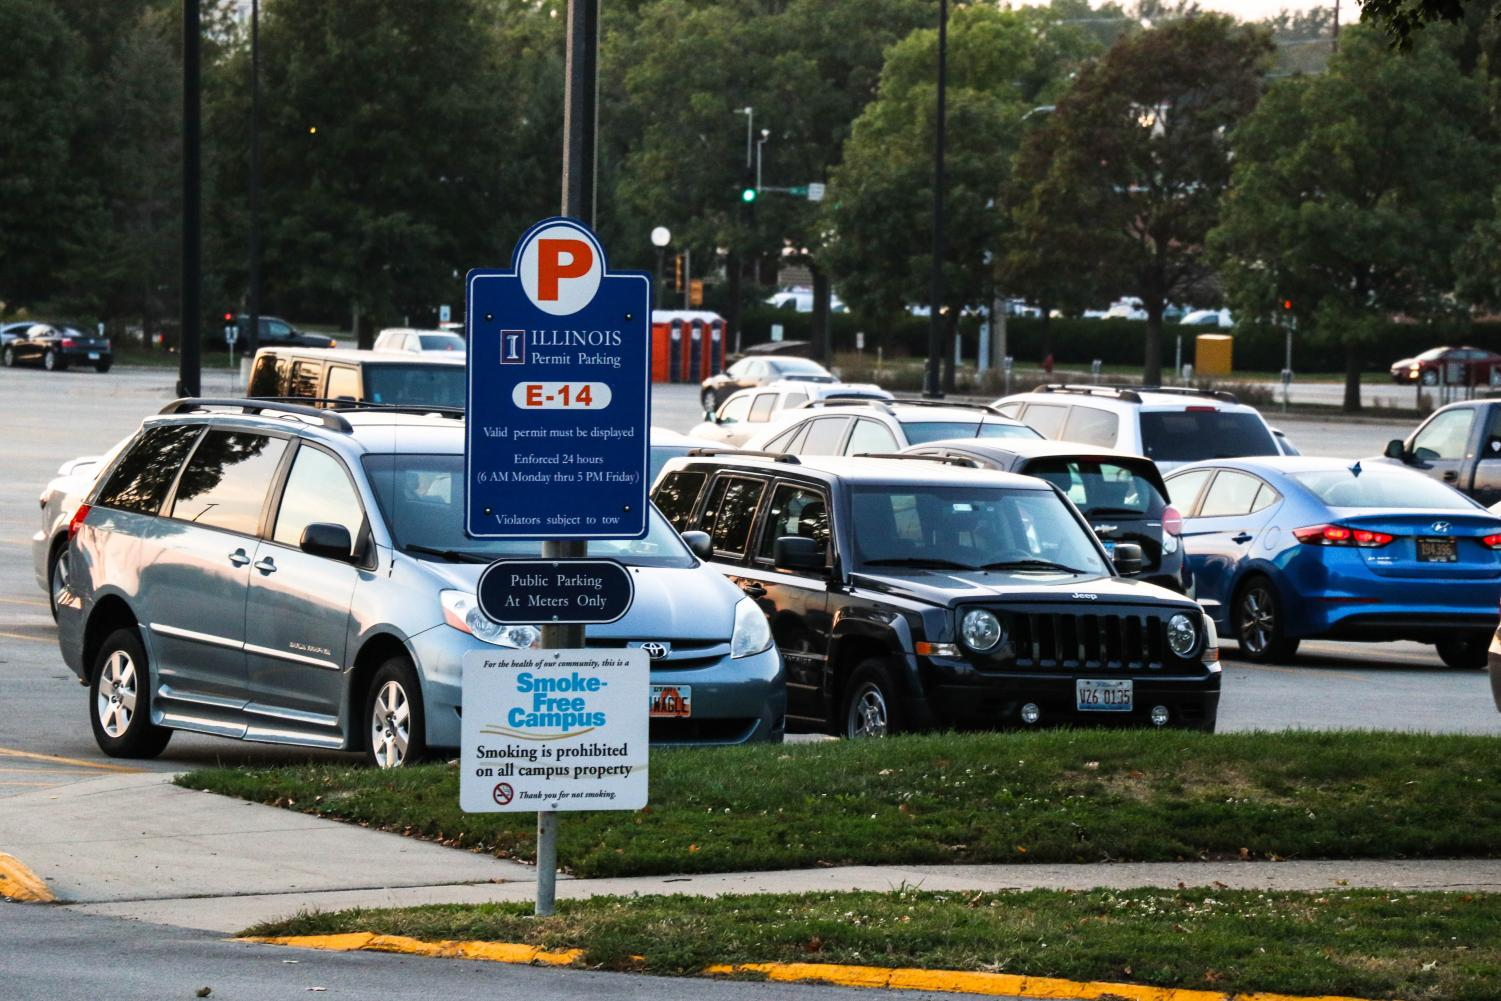 Students complaining about a lack of parking spaces near residence halls may have their concerns alleviated.